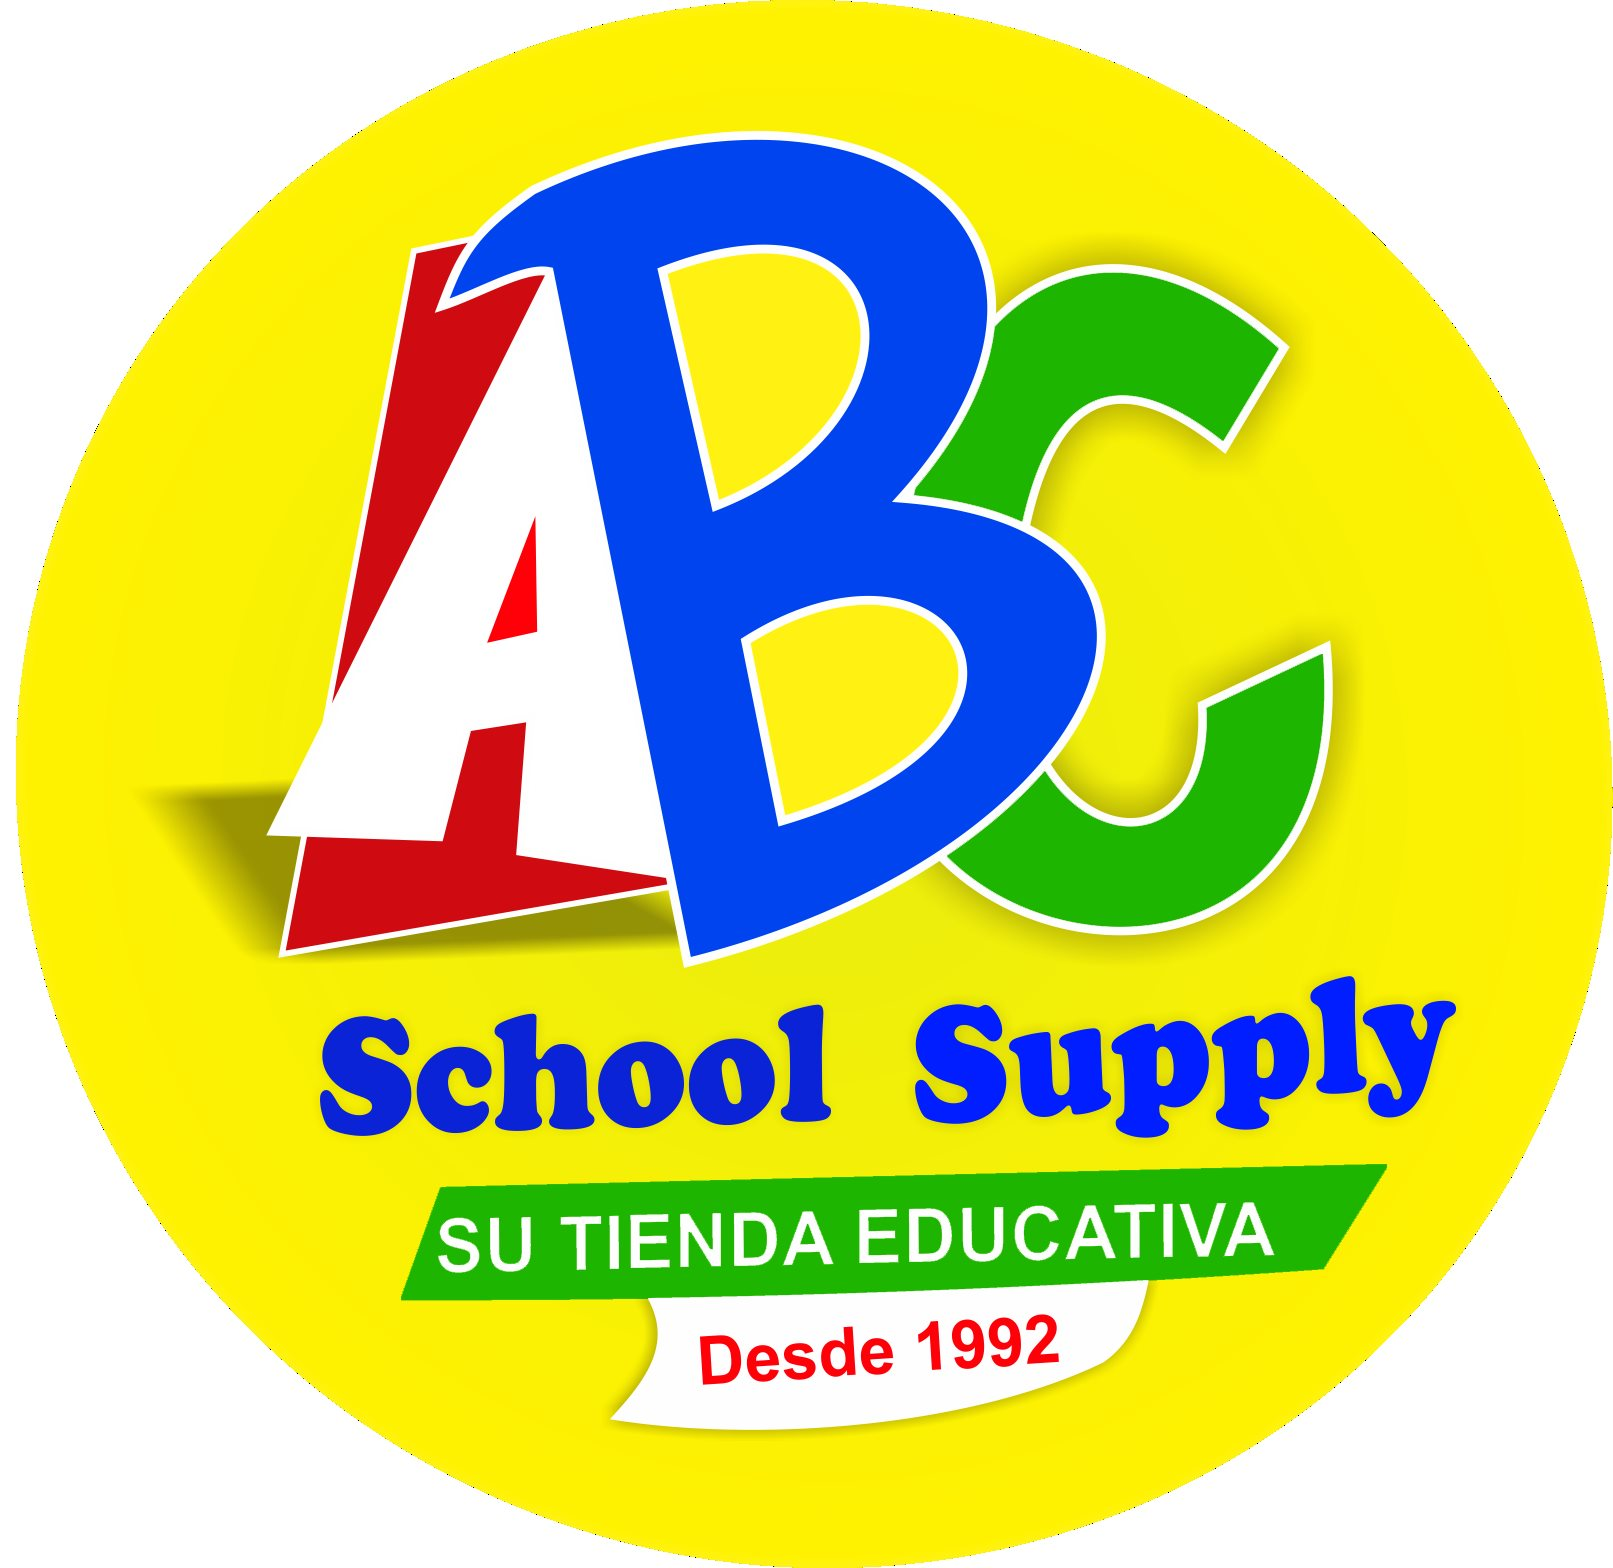 ABC School Supply